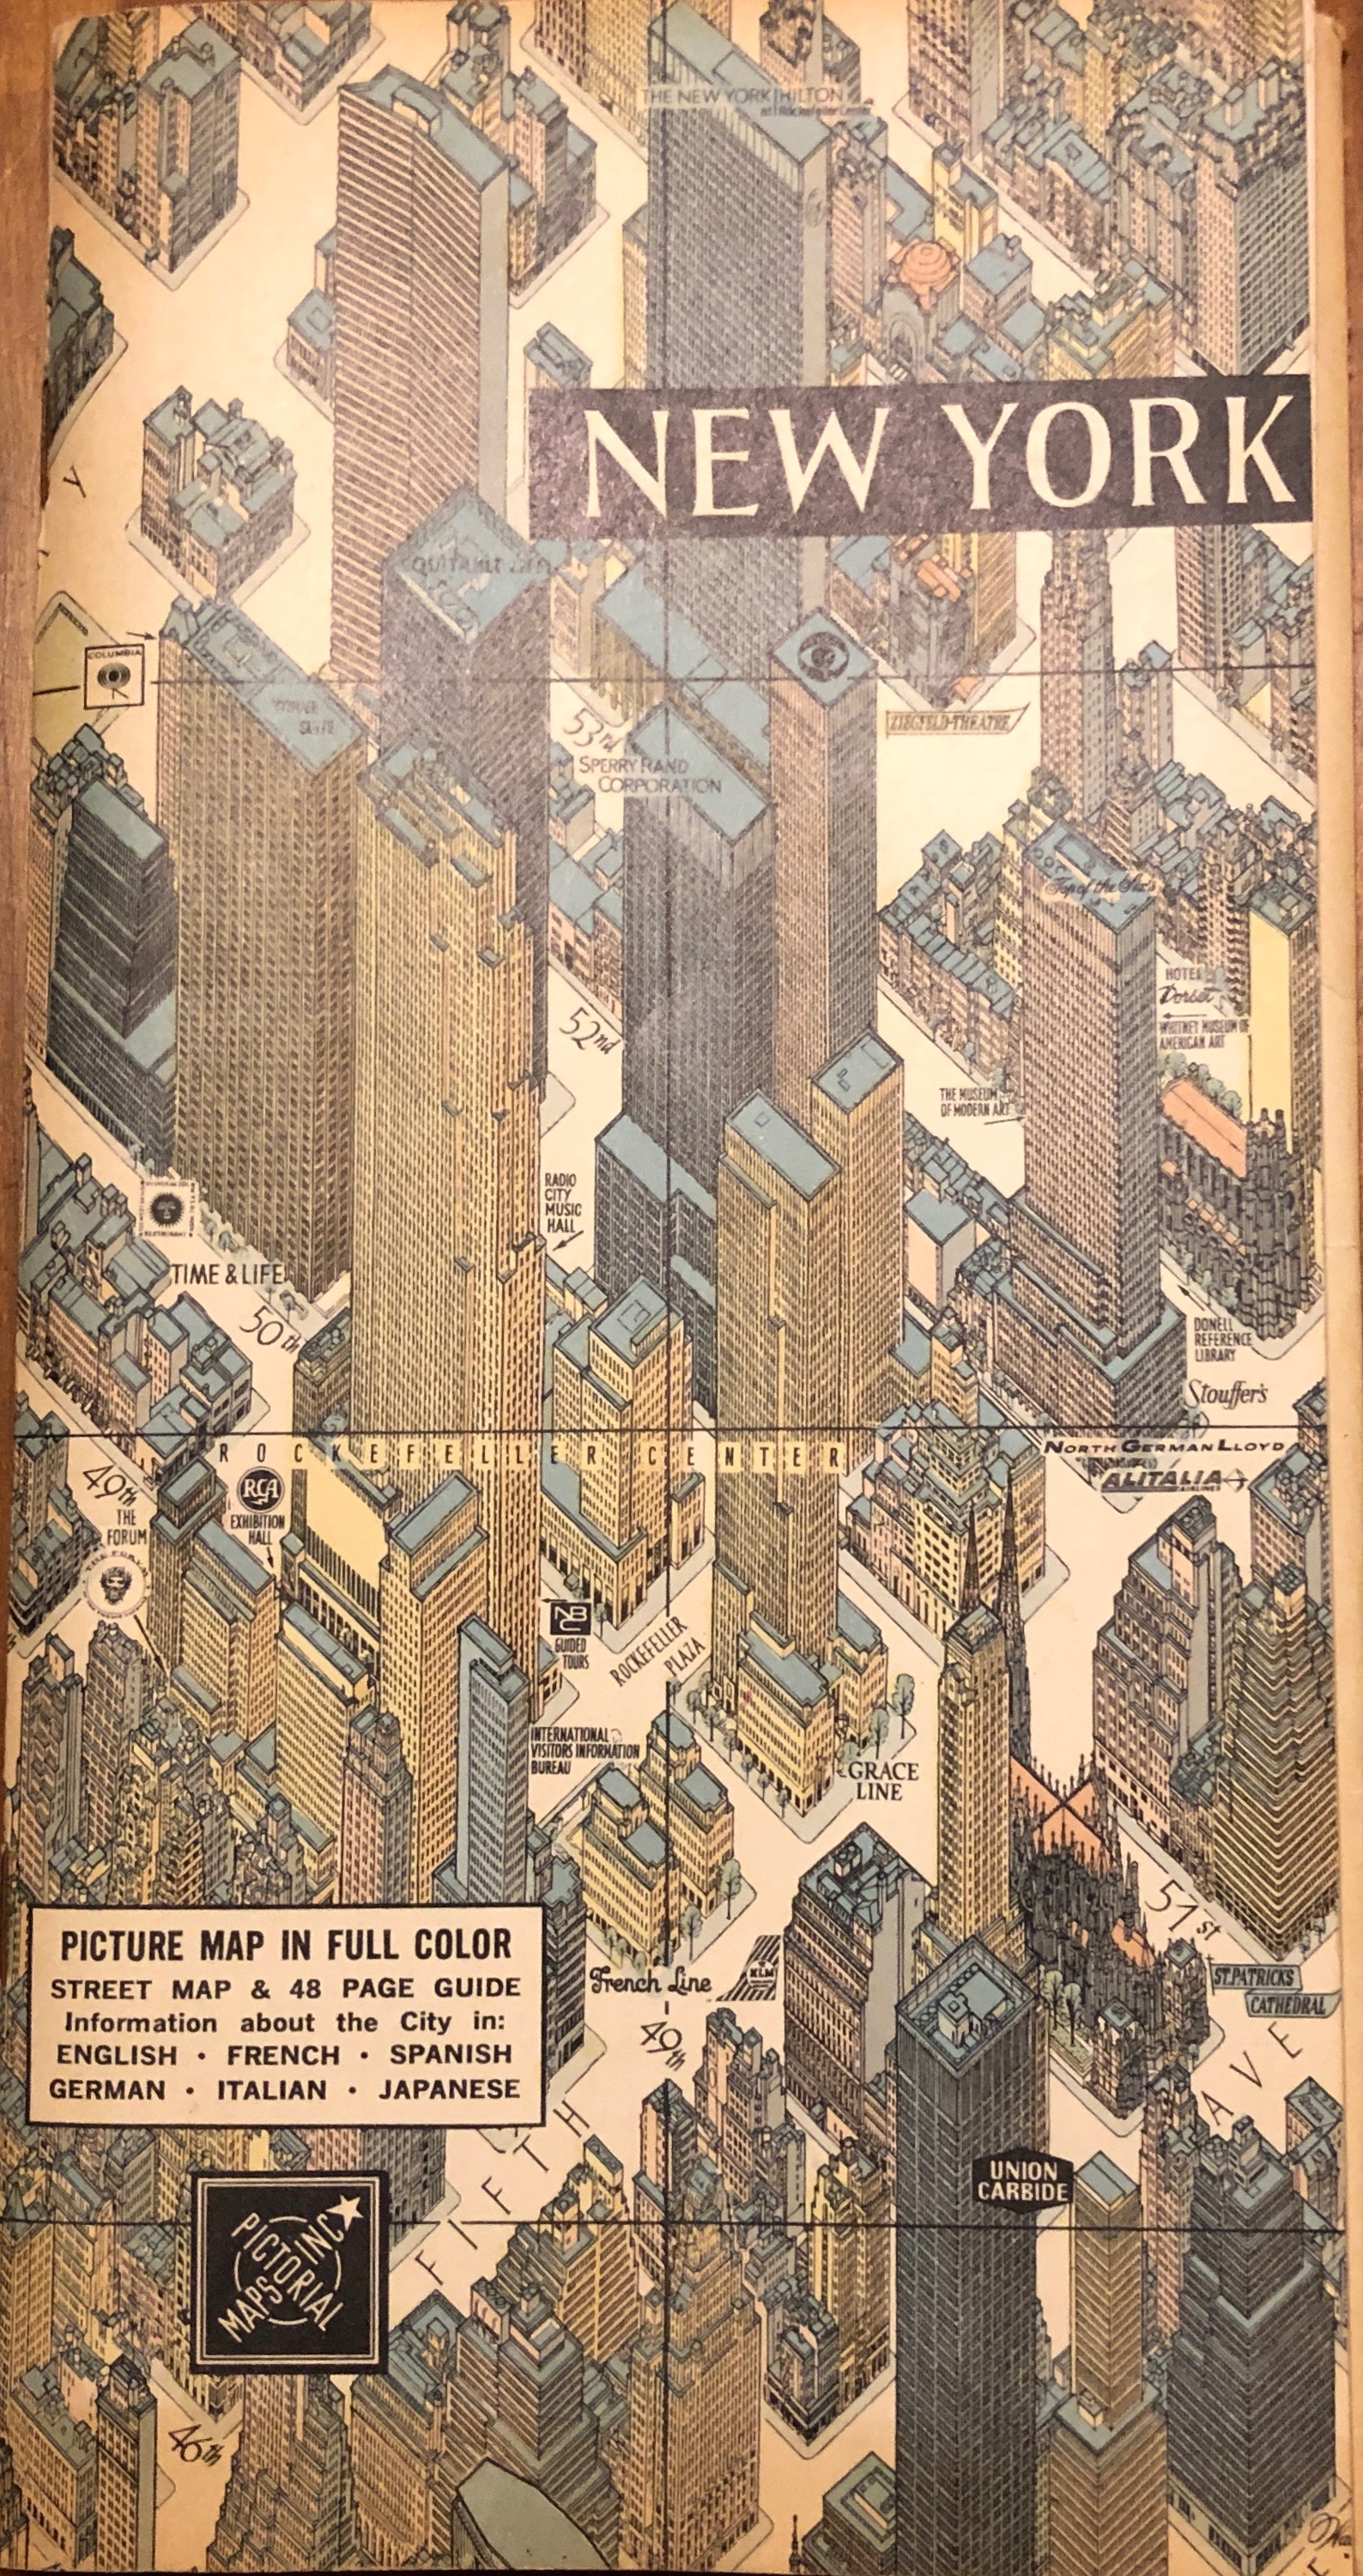 New York Pictorial Map in Full Color. Two-sided Street Map and 48-page Guide. Birds-eye View from Hudson River to East River, Little West Village to Central Park. Full page map of Richmond, Staten Island on Verso. Created by Hermann Bollmann, Artist, for Pictorial Maps, Inc., 99 Warren Street, New York City.